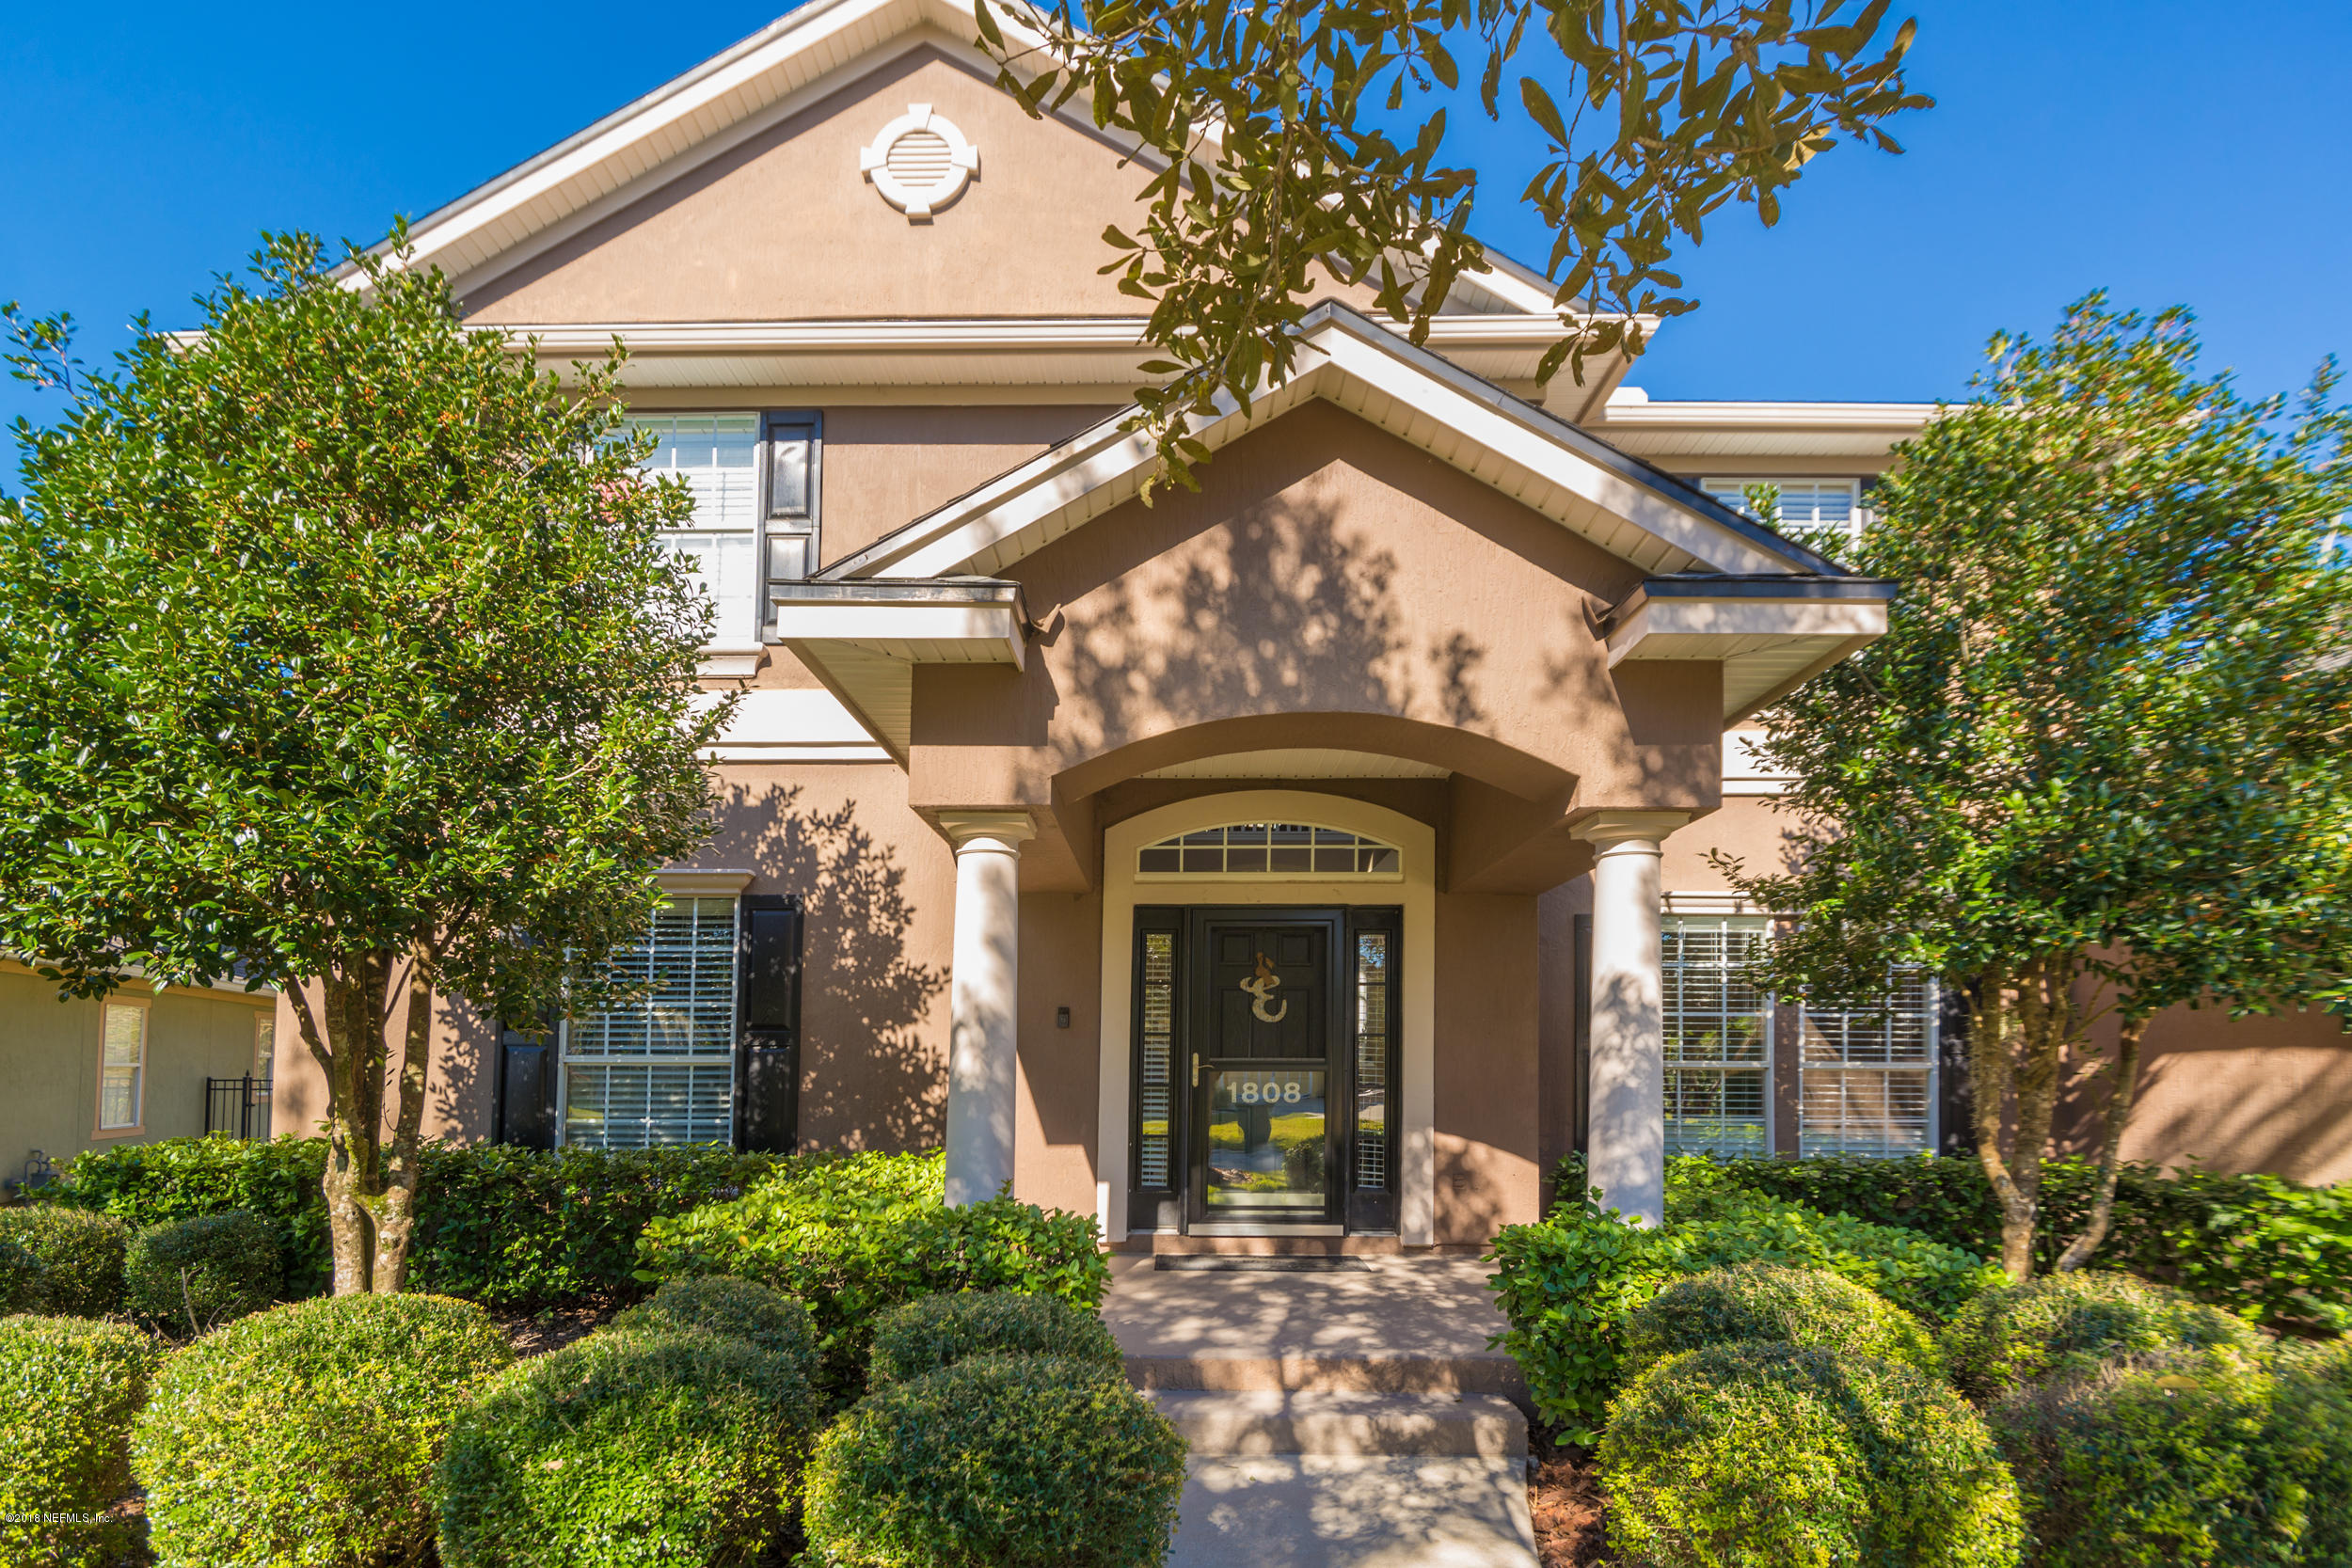 1808 RED HAWK, ST AUGUSTINE, FLORIDA 32092, 5 Bedrooms Bedrooms, ,3 BathroomsBathrooms,Residential - single family,For sale,RED HAWK,970459